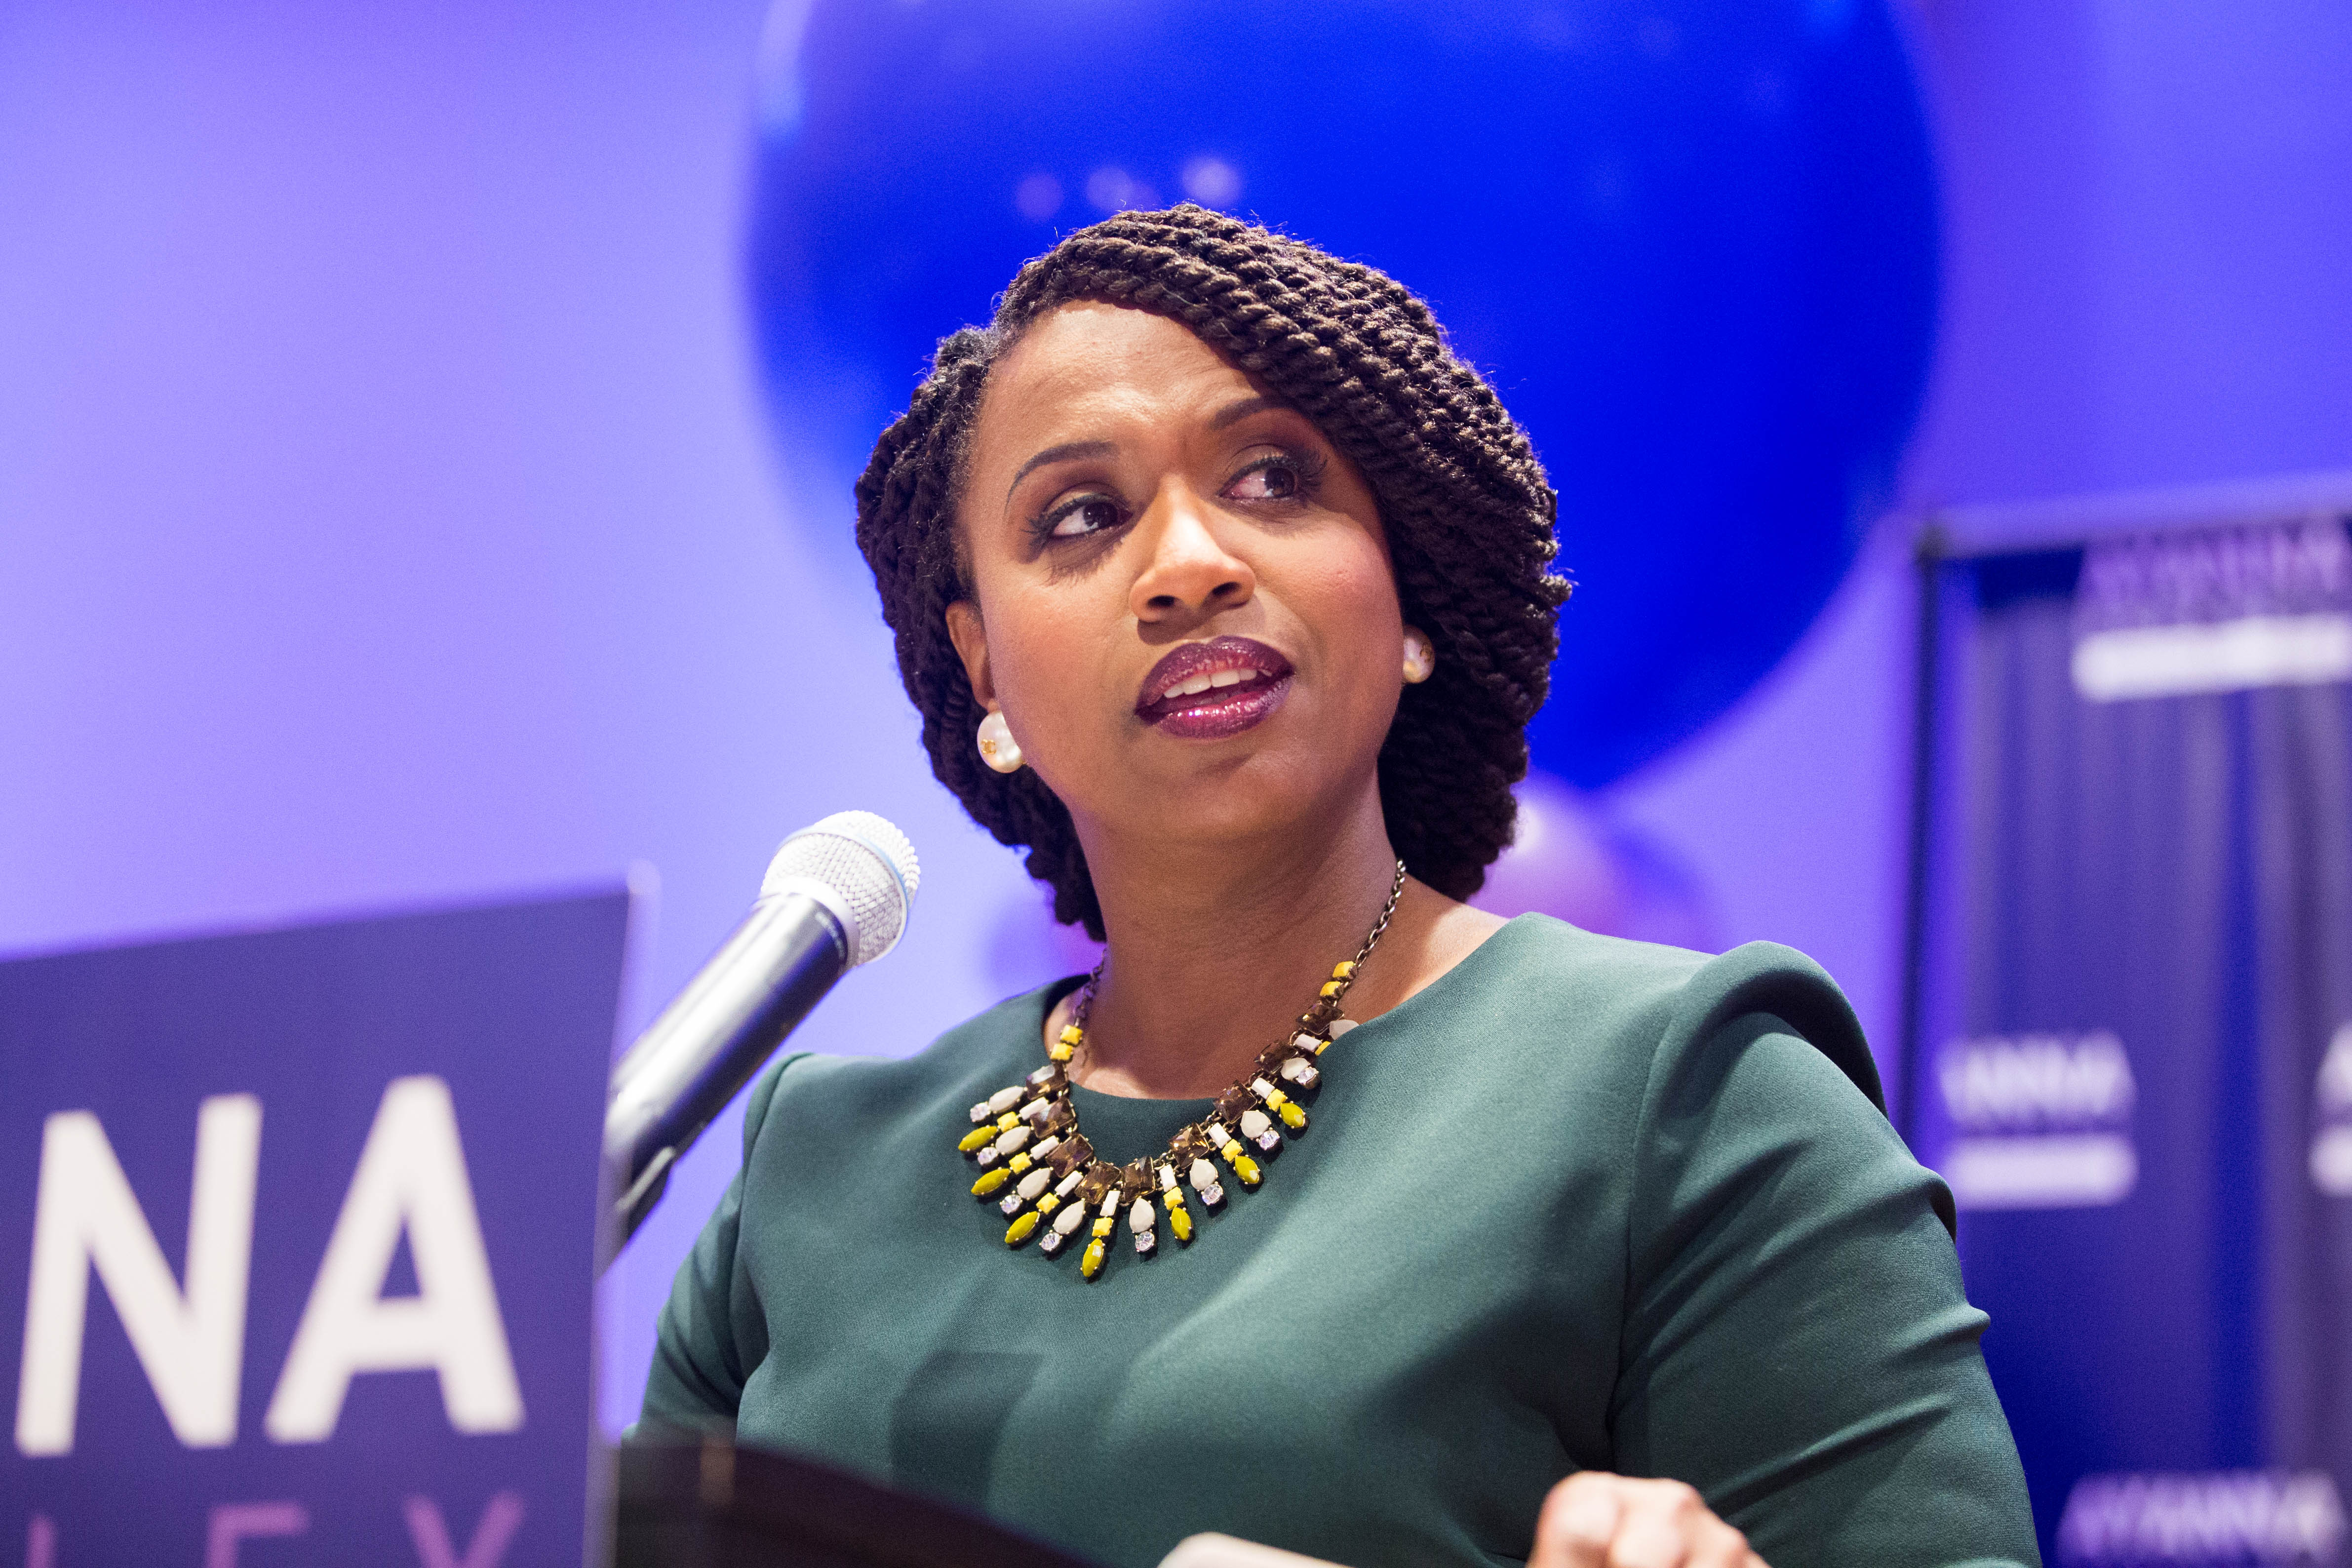 Ayanna Pressley just won the Massachusetts Democratic primary in an Alexandria Ocasio-Cortez-like upset